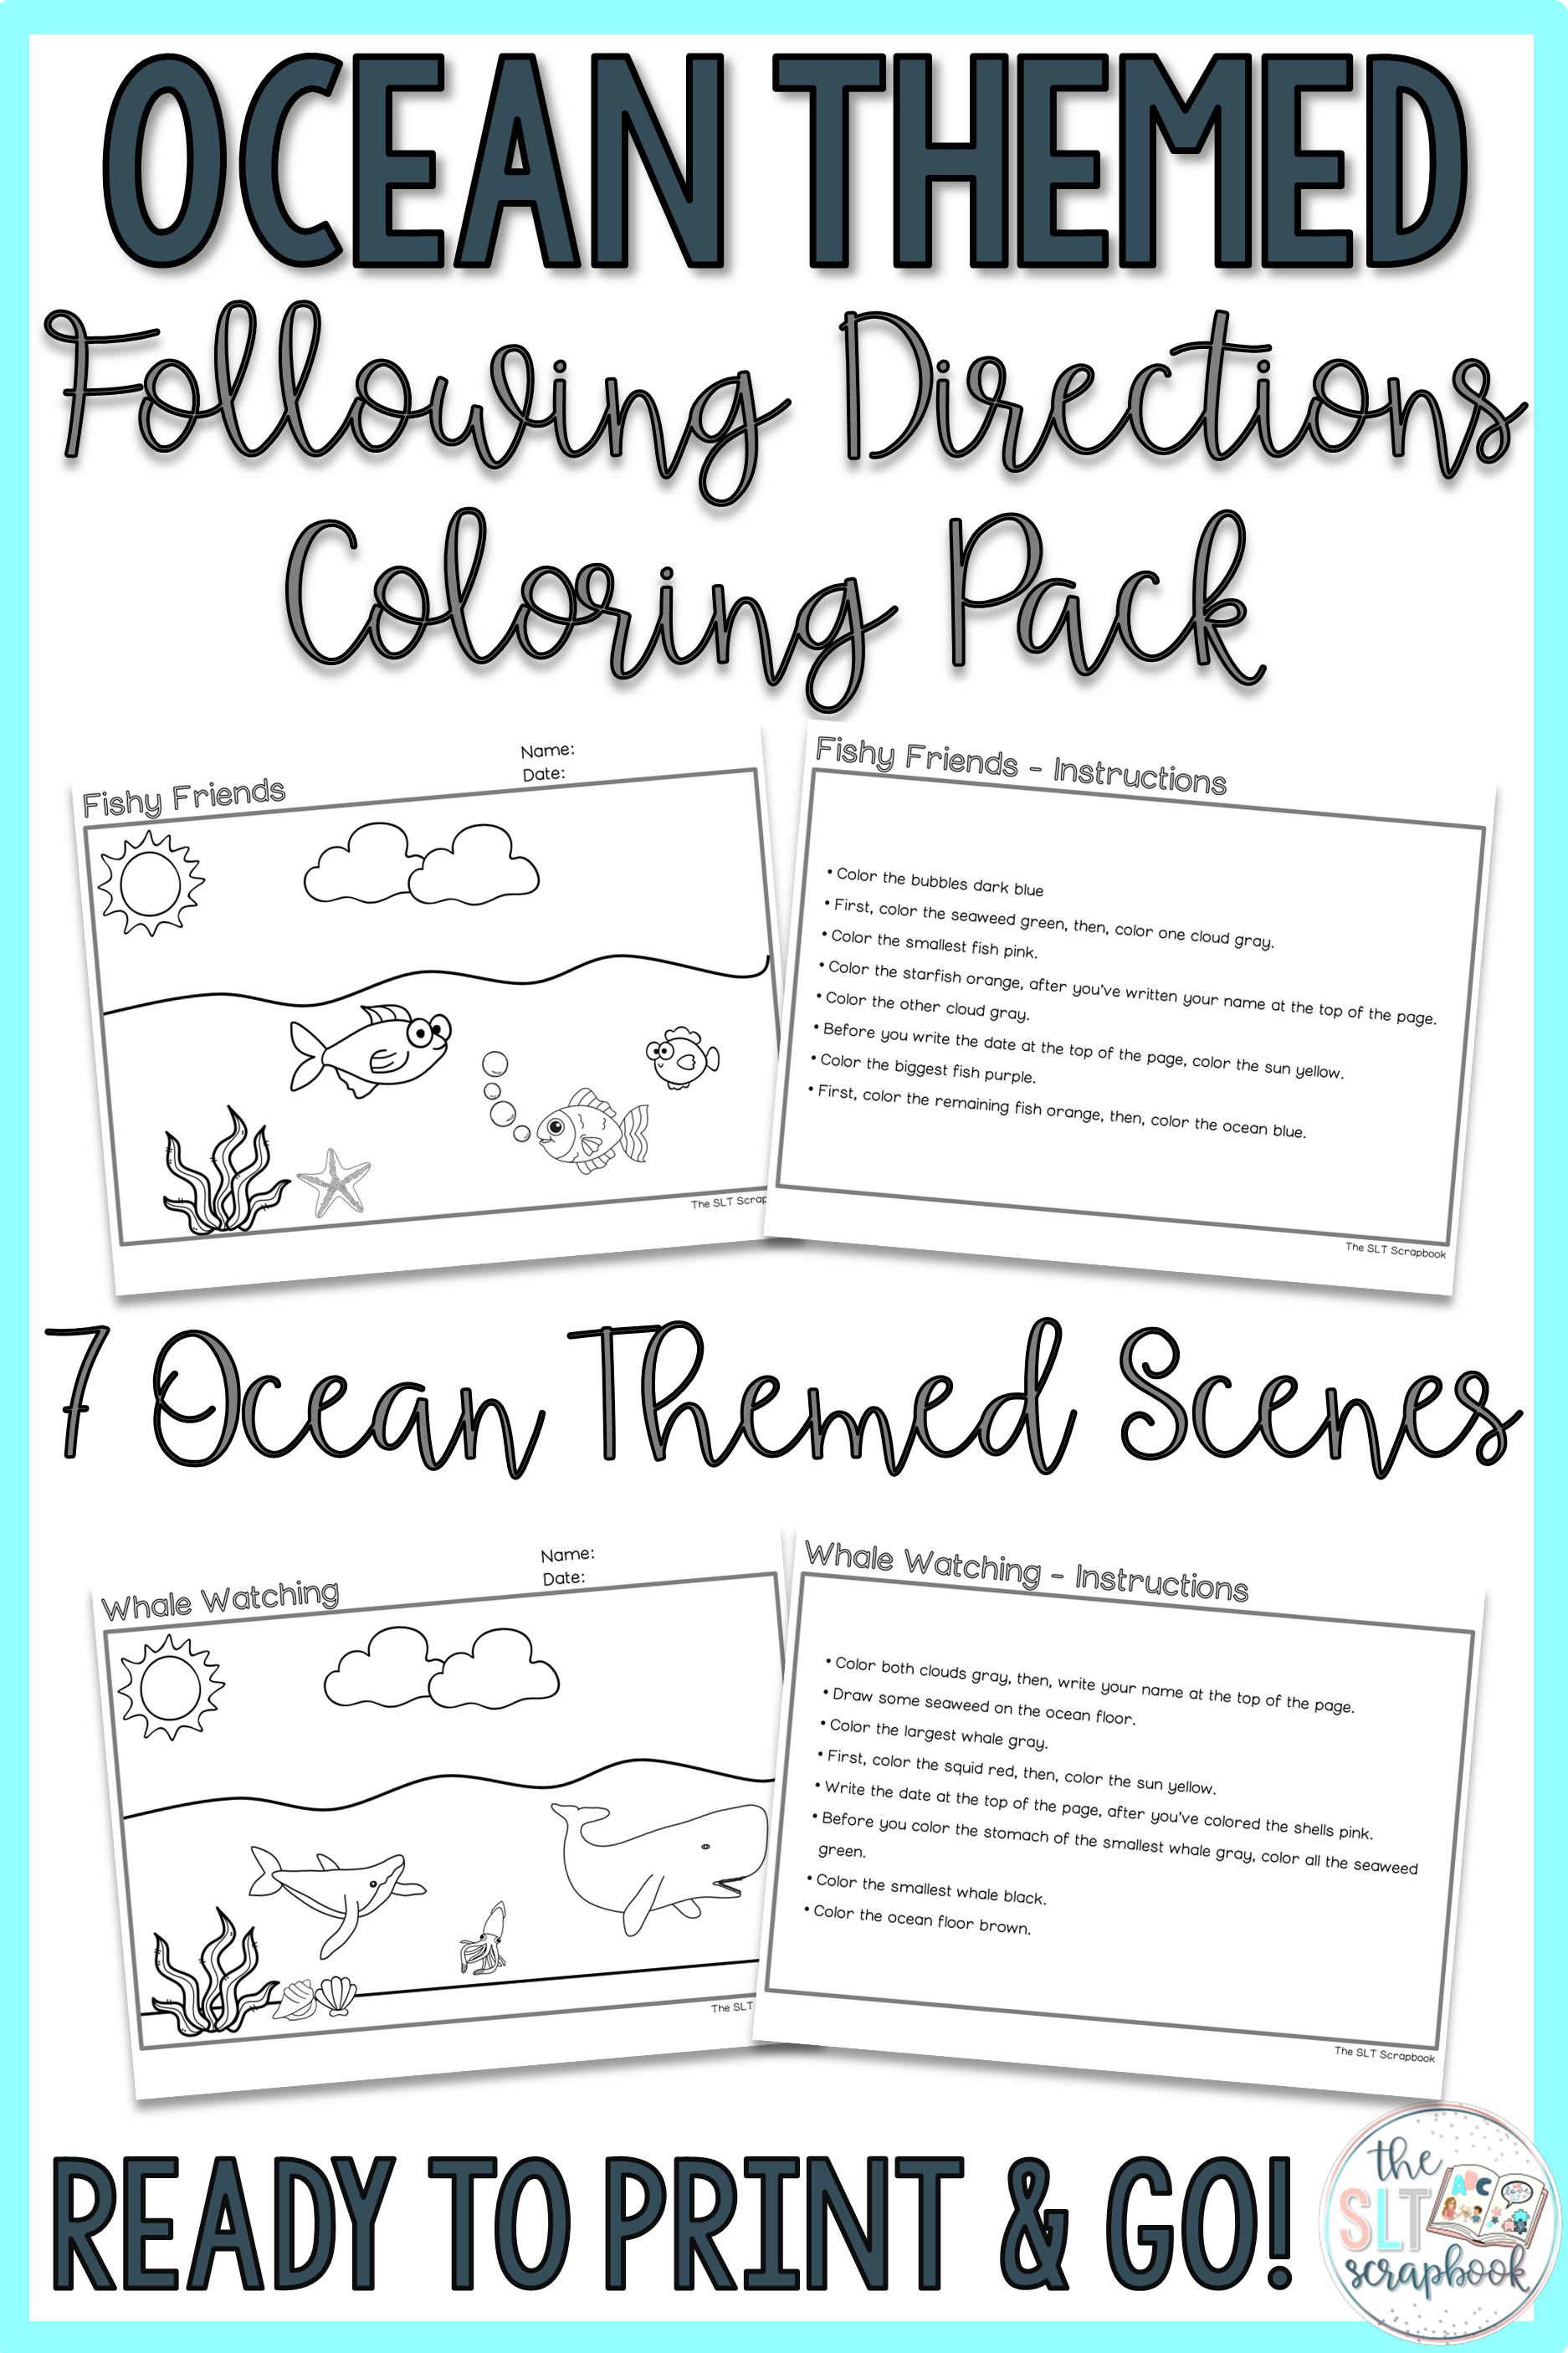 Ocean Themed Following Directions Coloring Pack Mixed